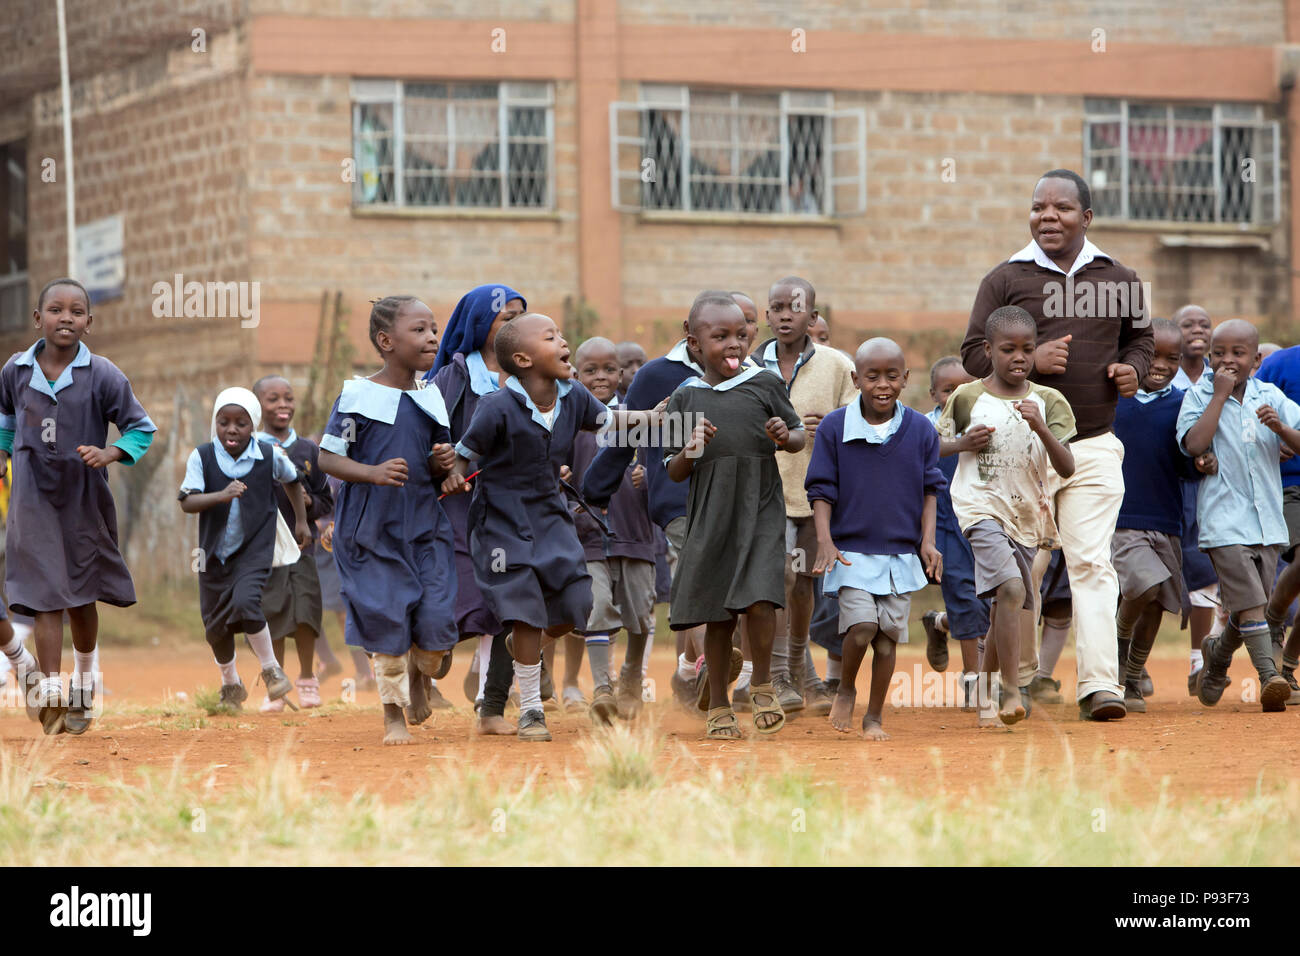 Nairobi, Kenya - Students in school uniforms walk with a teacher in the schoolyard of St. John's Community Center Pumwani. Stock Photo